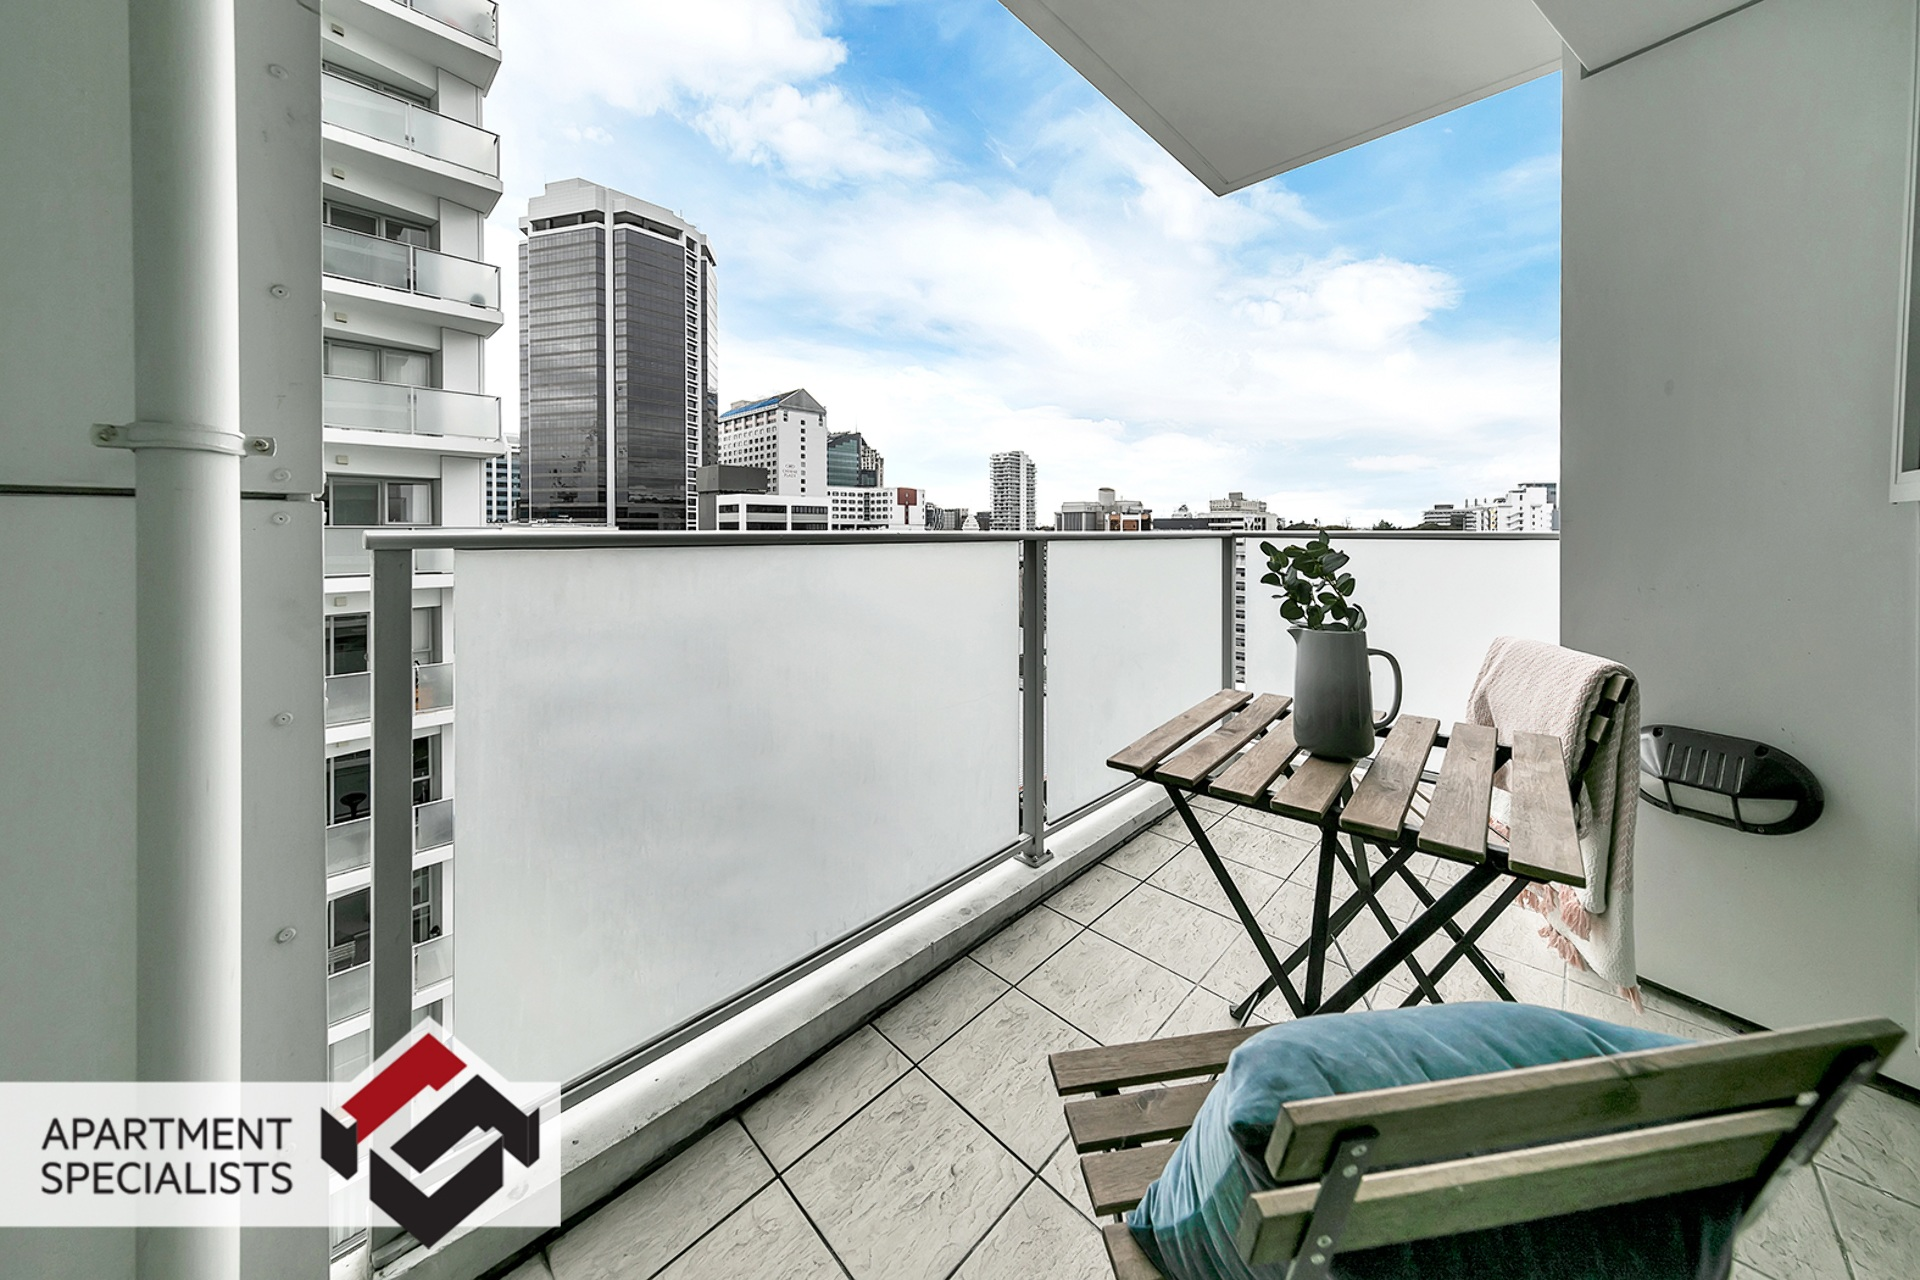 7 | 207 Federal Street, City Centre | Apartment Specialists